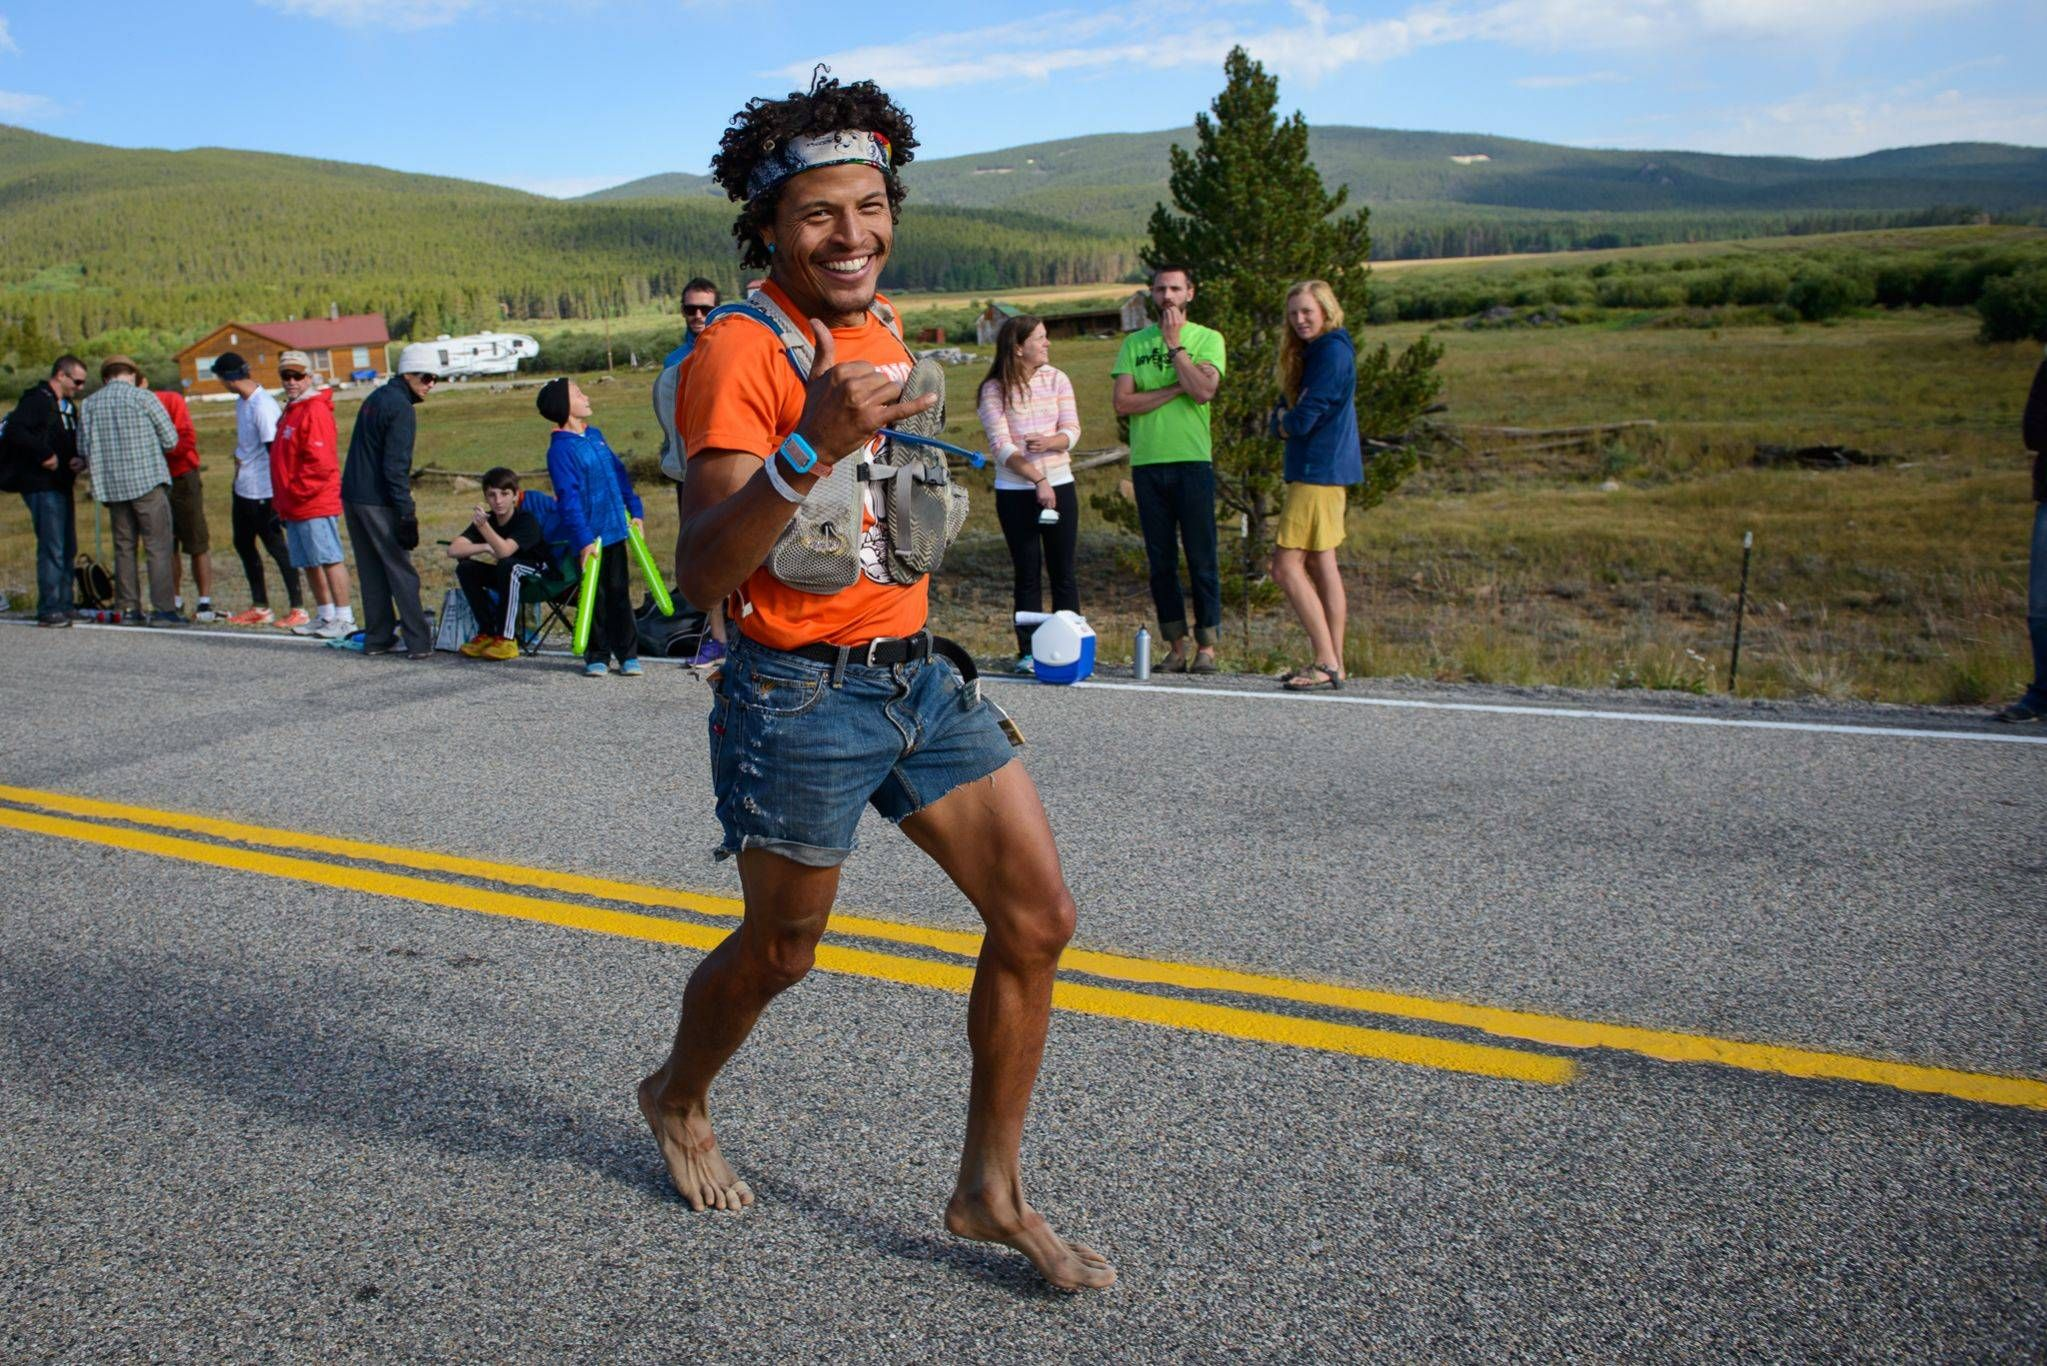 Ran the Leadville 100 mile trail race in jorts and barefoot. Impressive smile